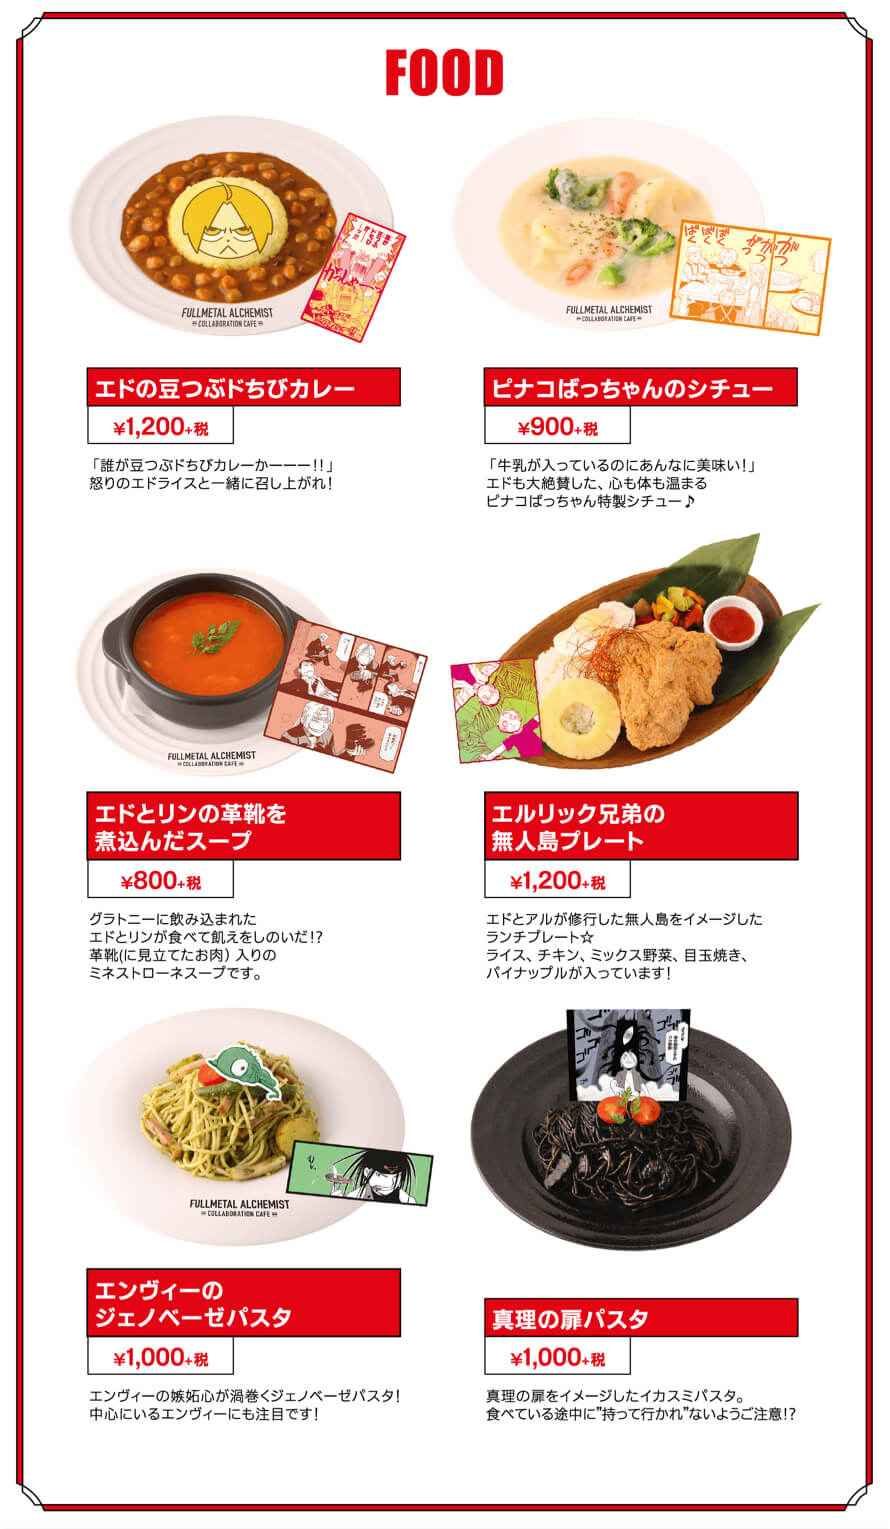 Food menu for the FMA Cafe